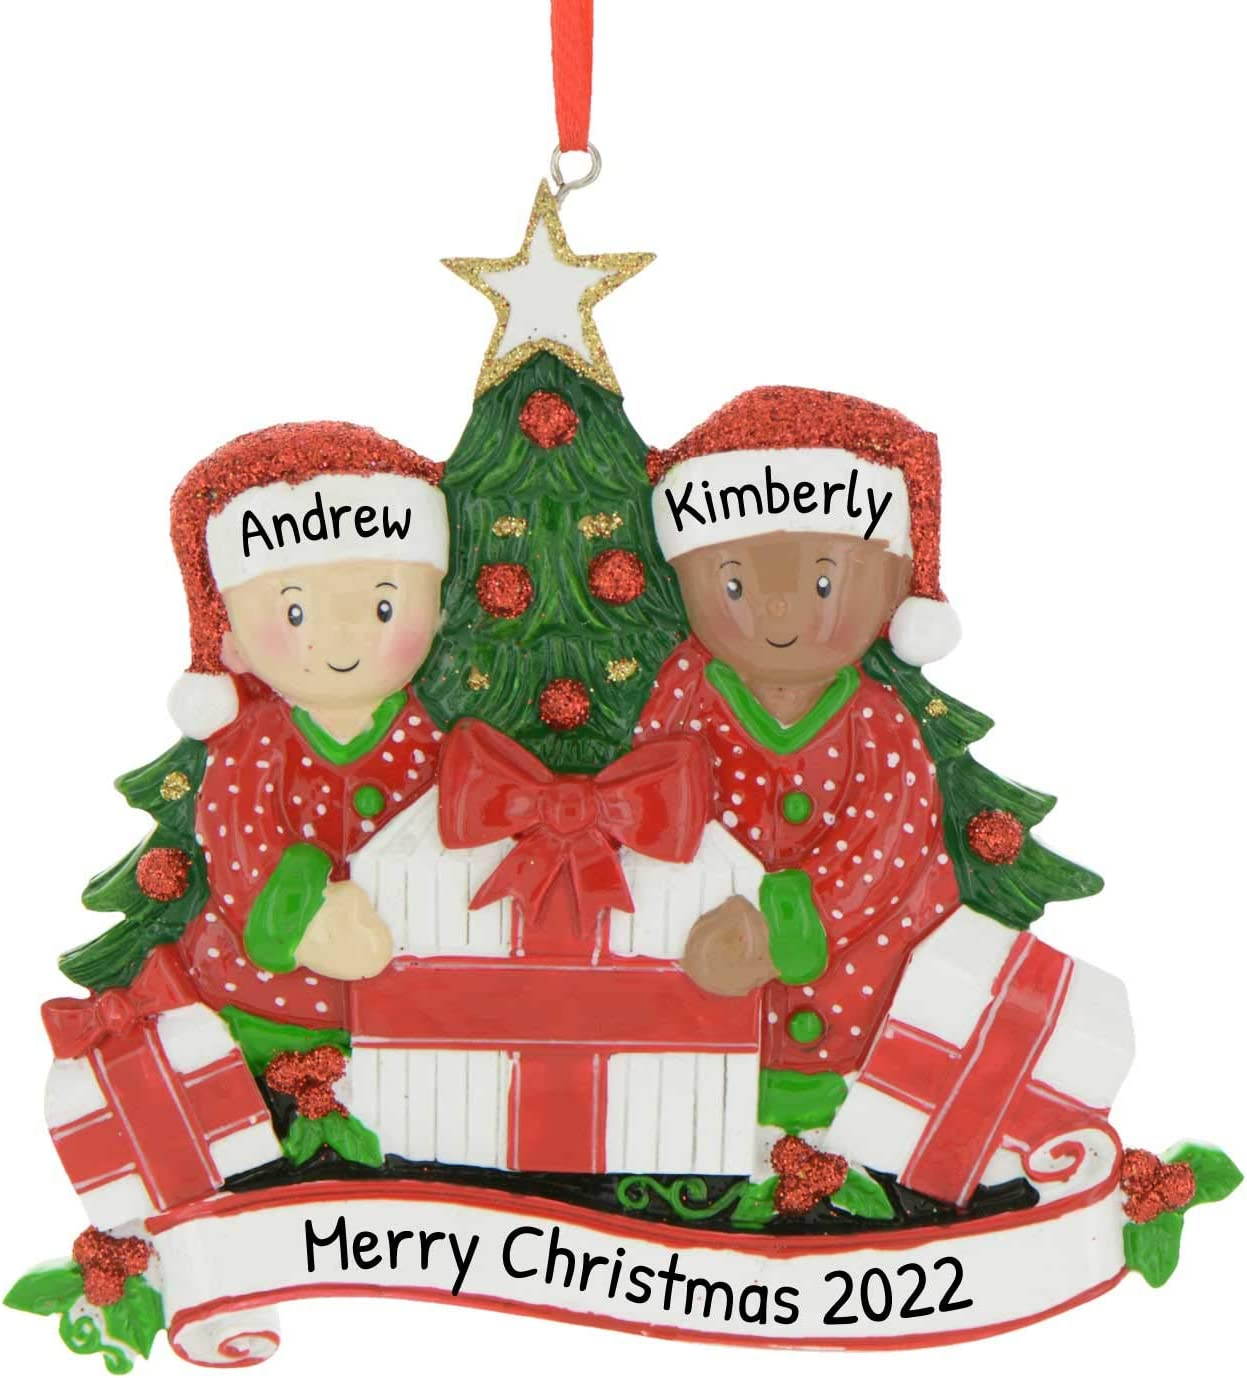 Opening Presents On Christmas Day 2020 Amazon.com: Personalized Mixed Race Opening Presents Family of 2